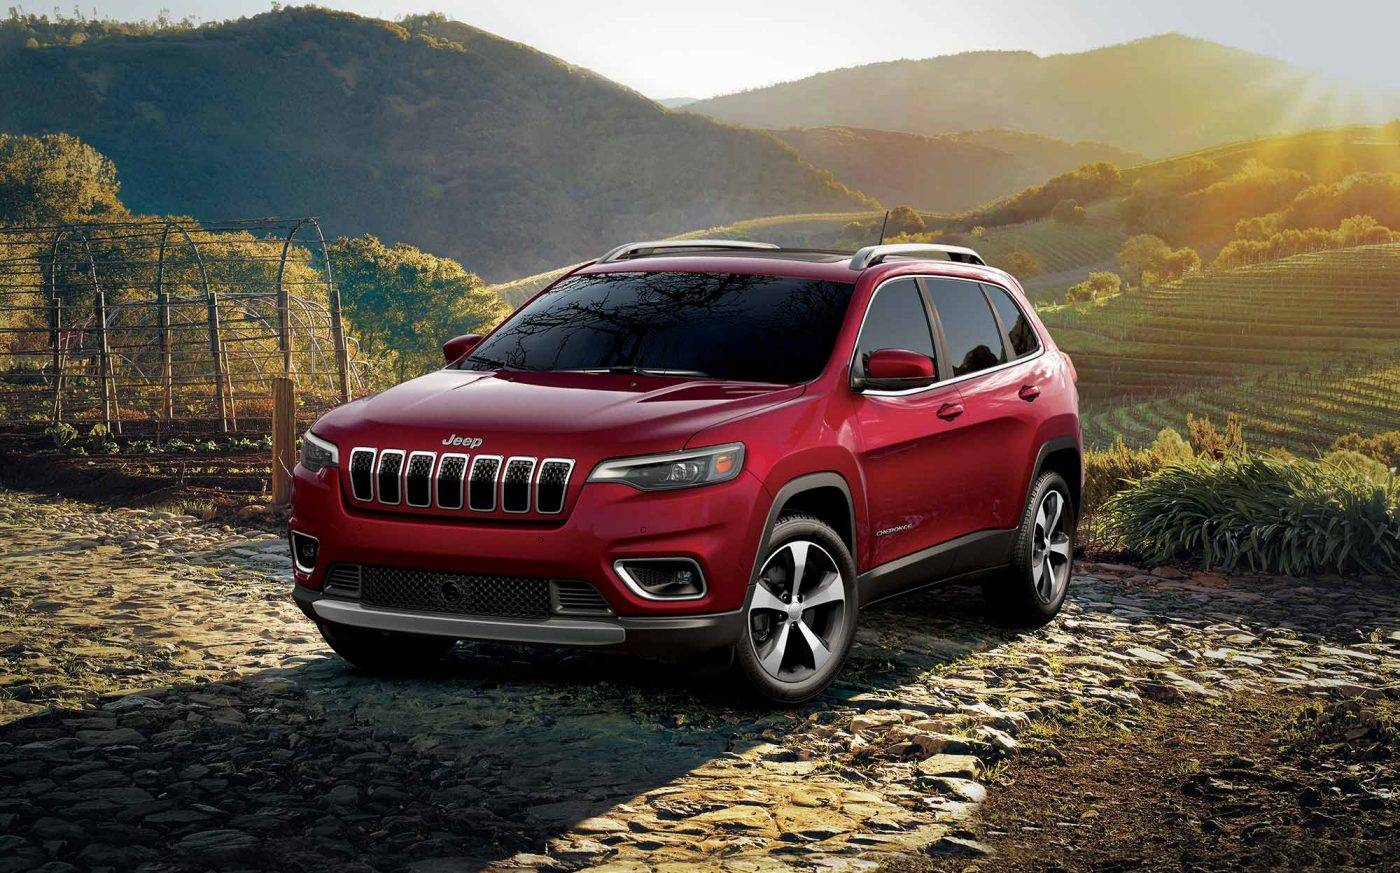 Jeep dealer near me Winston Salem NC - 2019 Jeep Cherokee